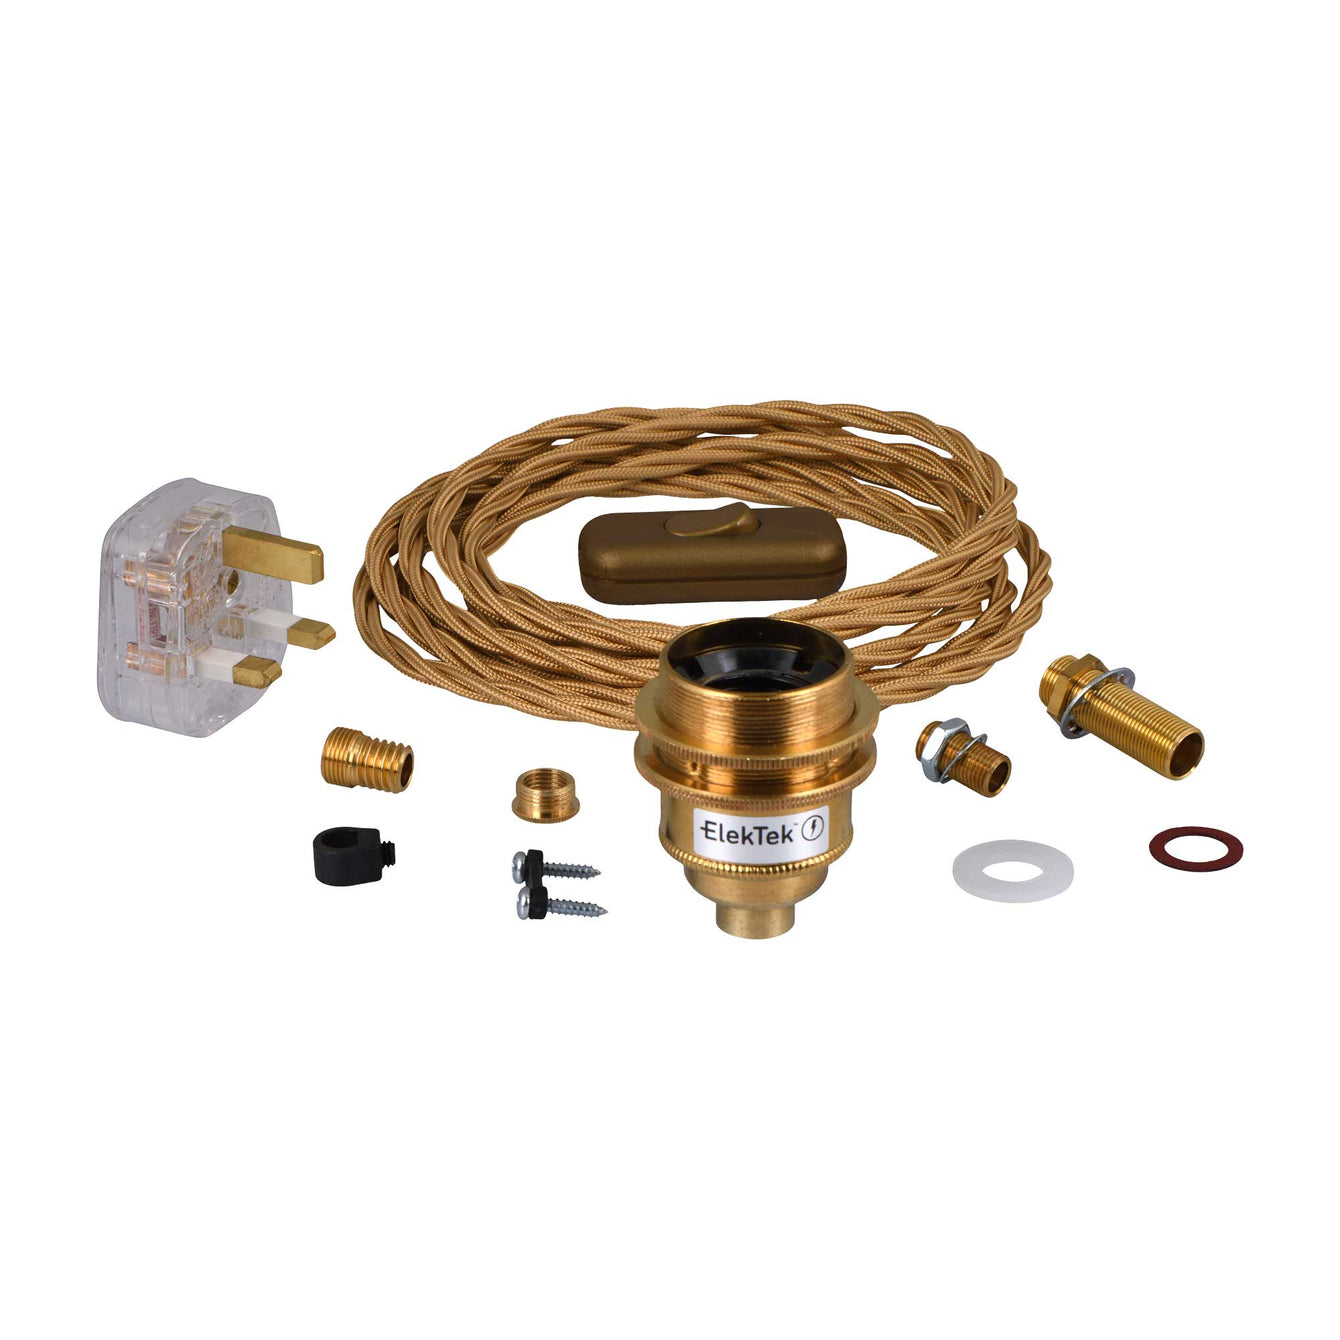 ElekTek Premium Lamp Kit Brass Shade Ring E27 Lamp Holder with Gold Flex, In Line Switch and 3A UK Plug - Buy It Better